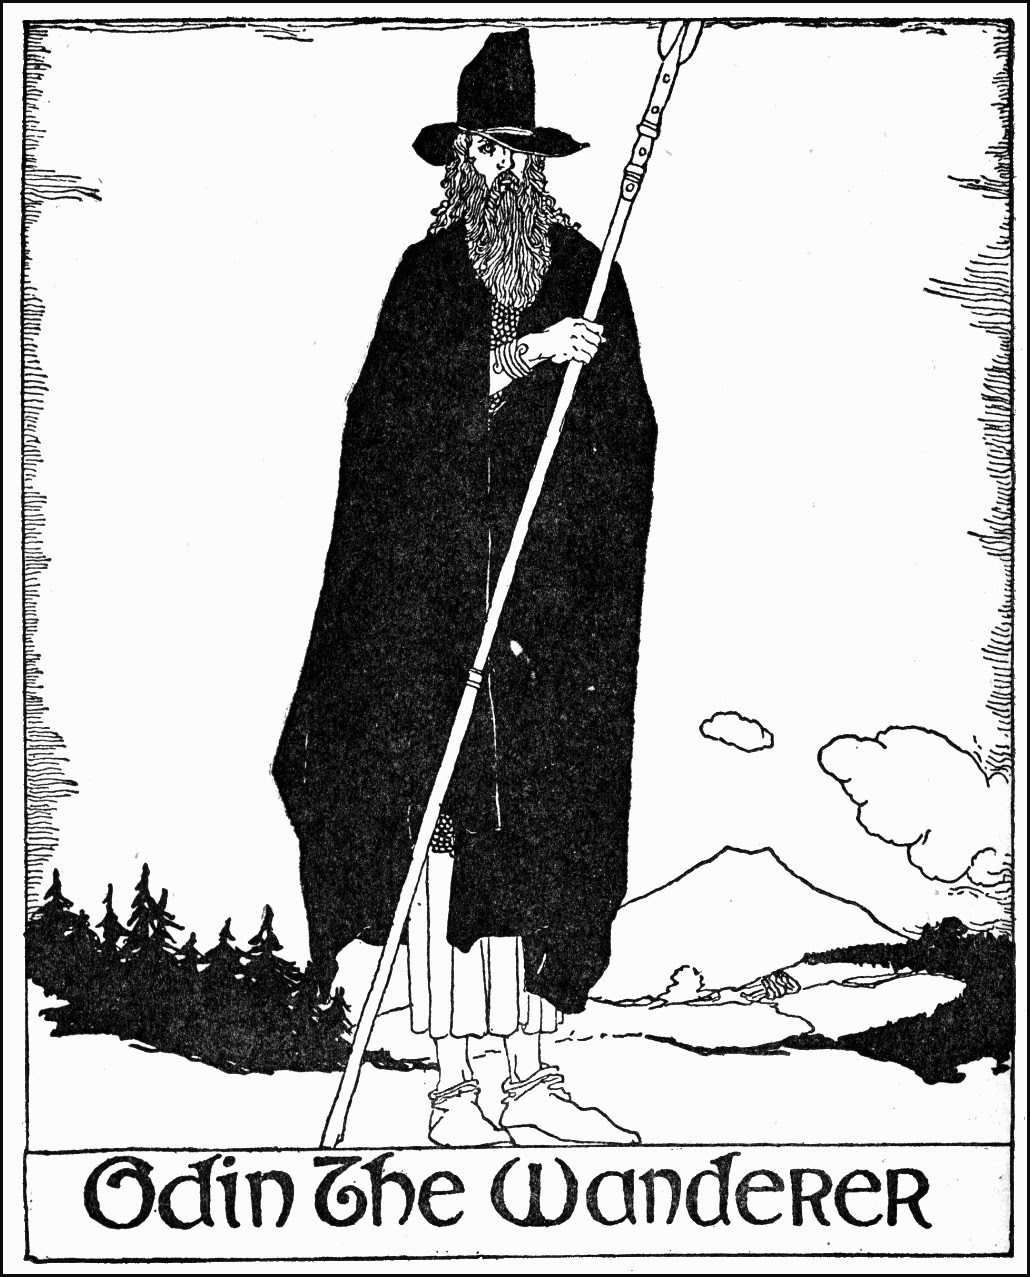 The Norse Mythology Blog Norsemyth Org ásatrú And Heathenry Belief And Beards Racists And Reporters